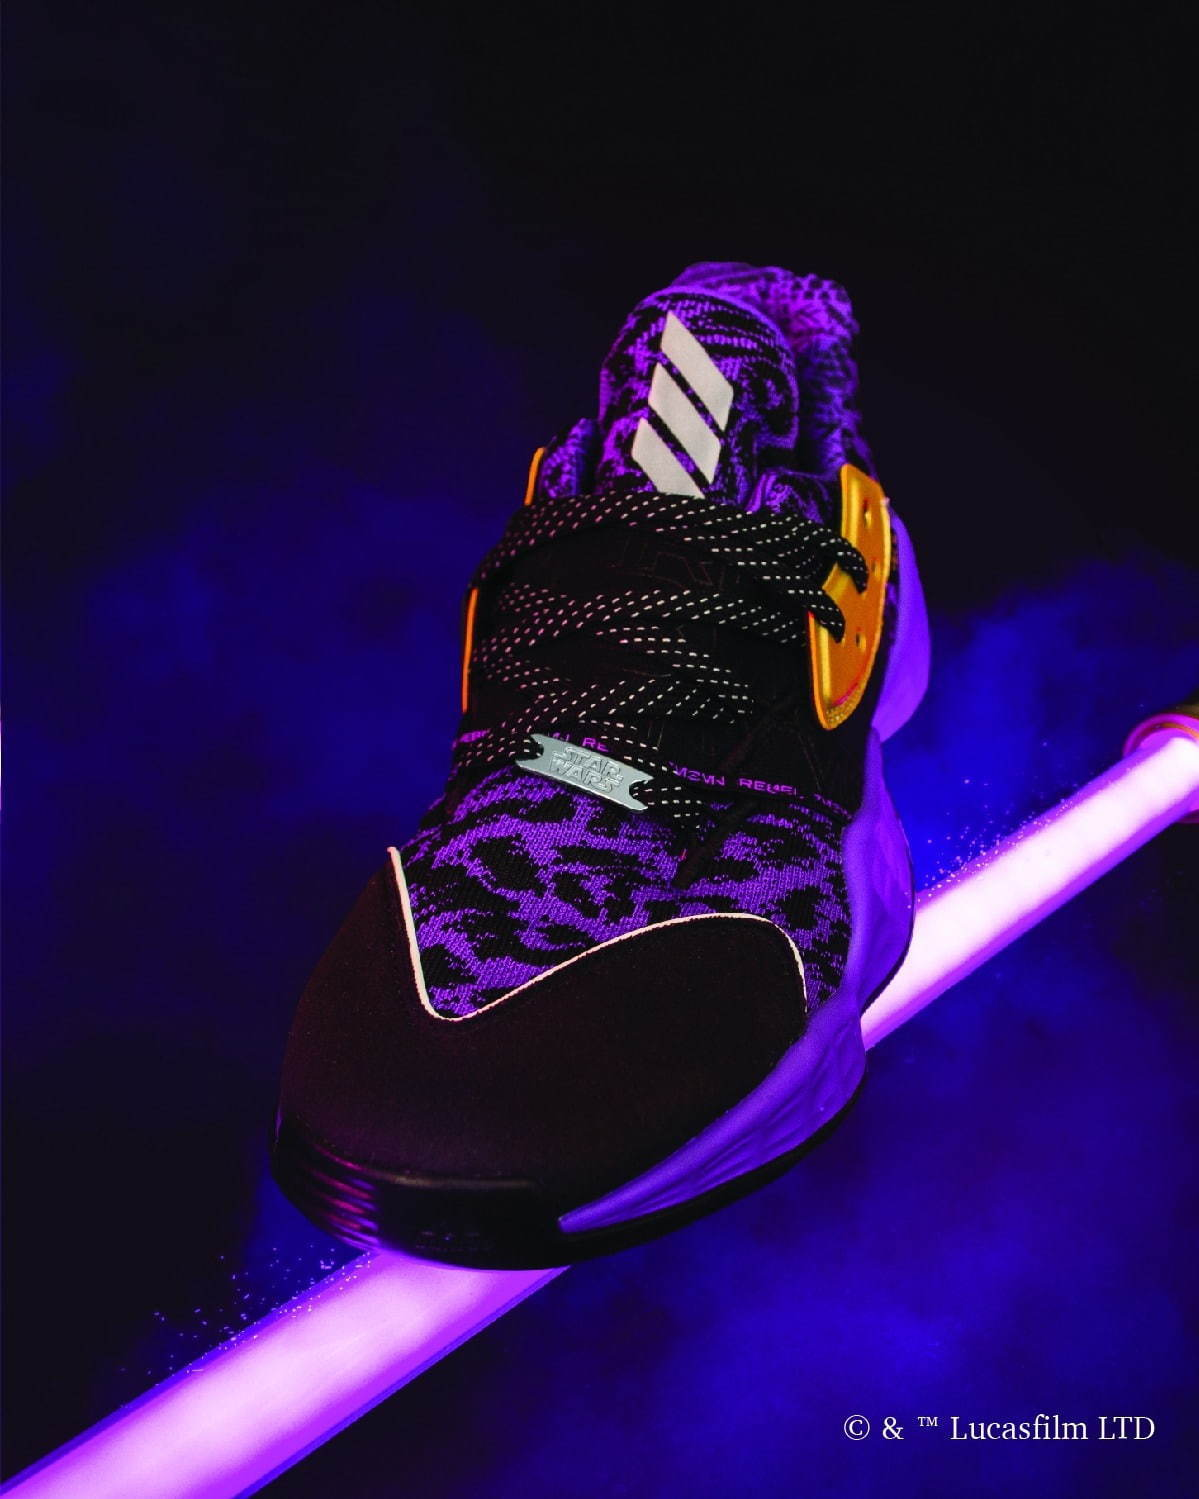 HARDEN VOL 4 STAR WARS: LIGHTSABER PURPLE